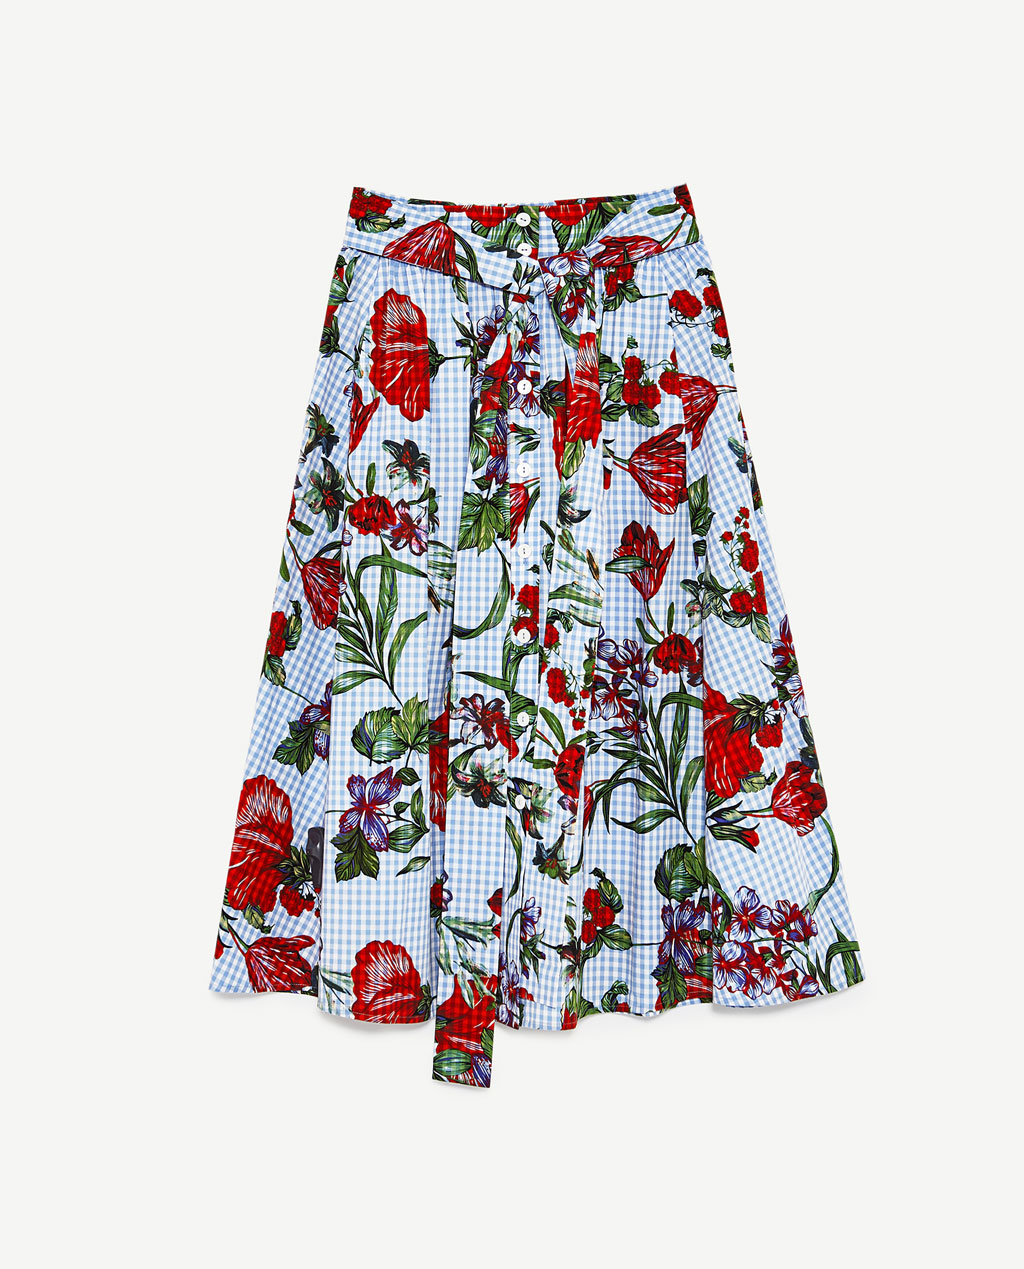 zara floral gingham skirt